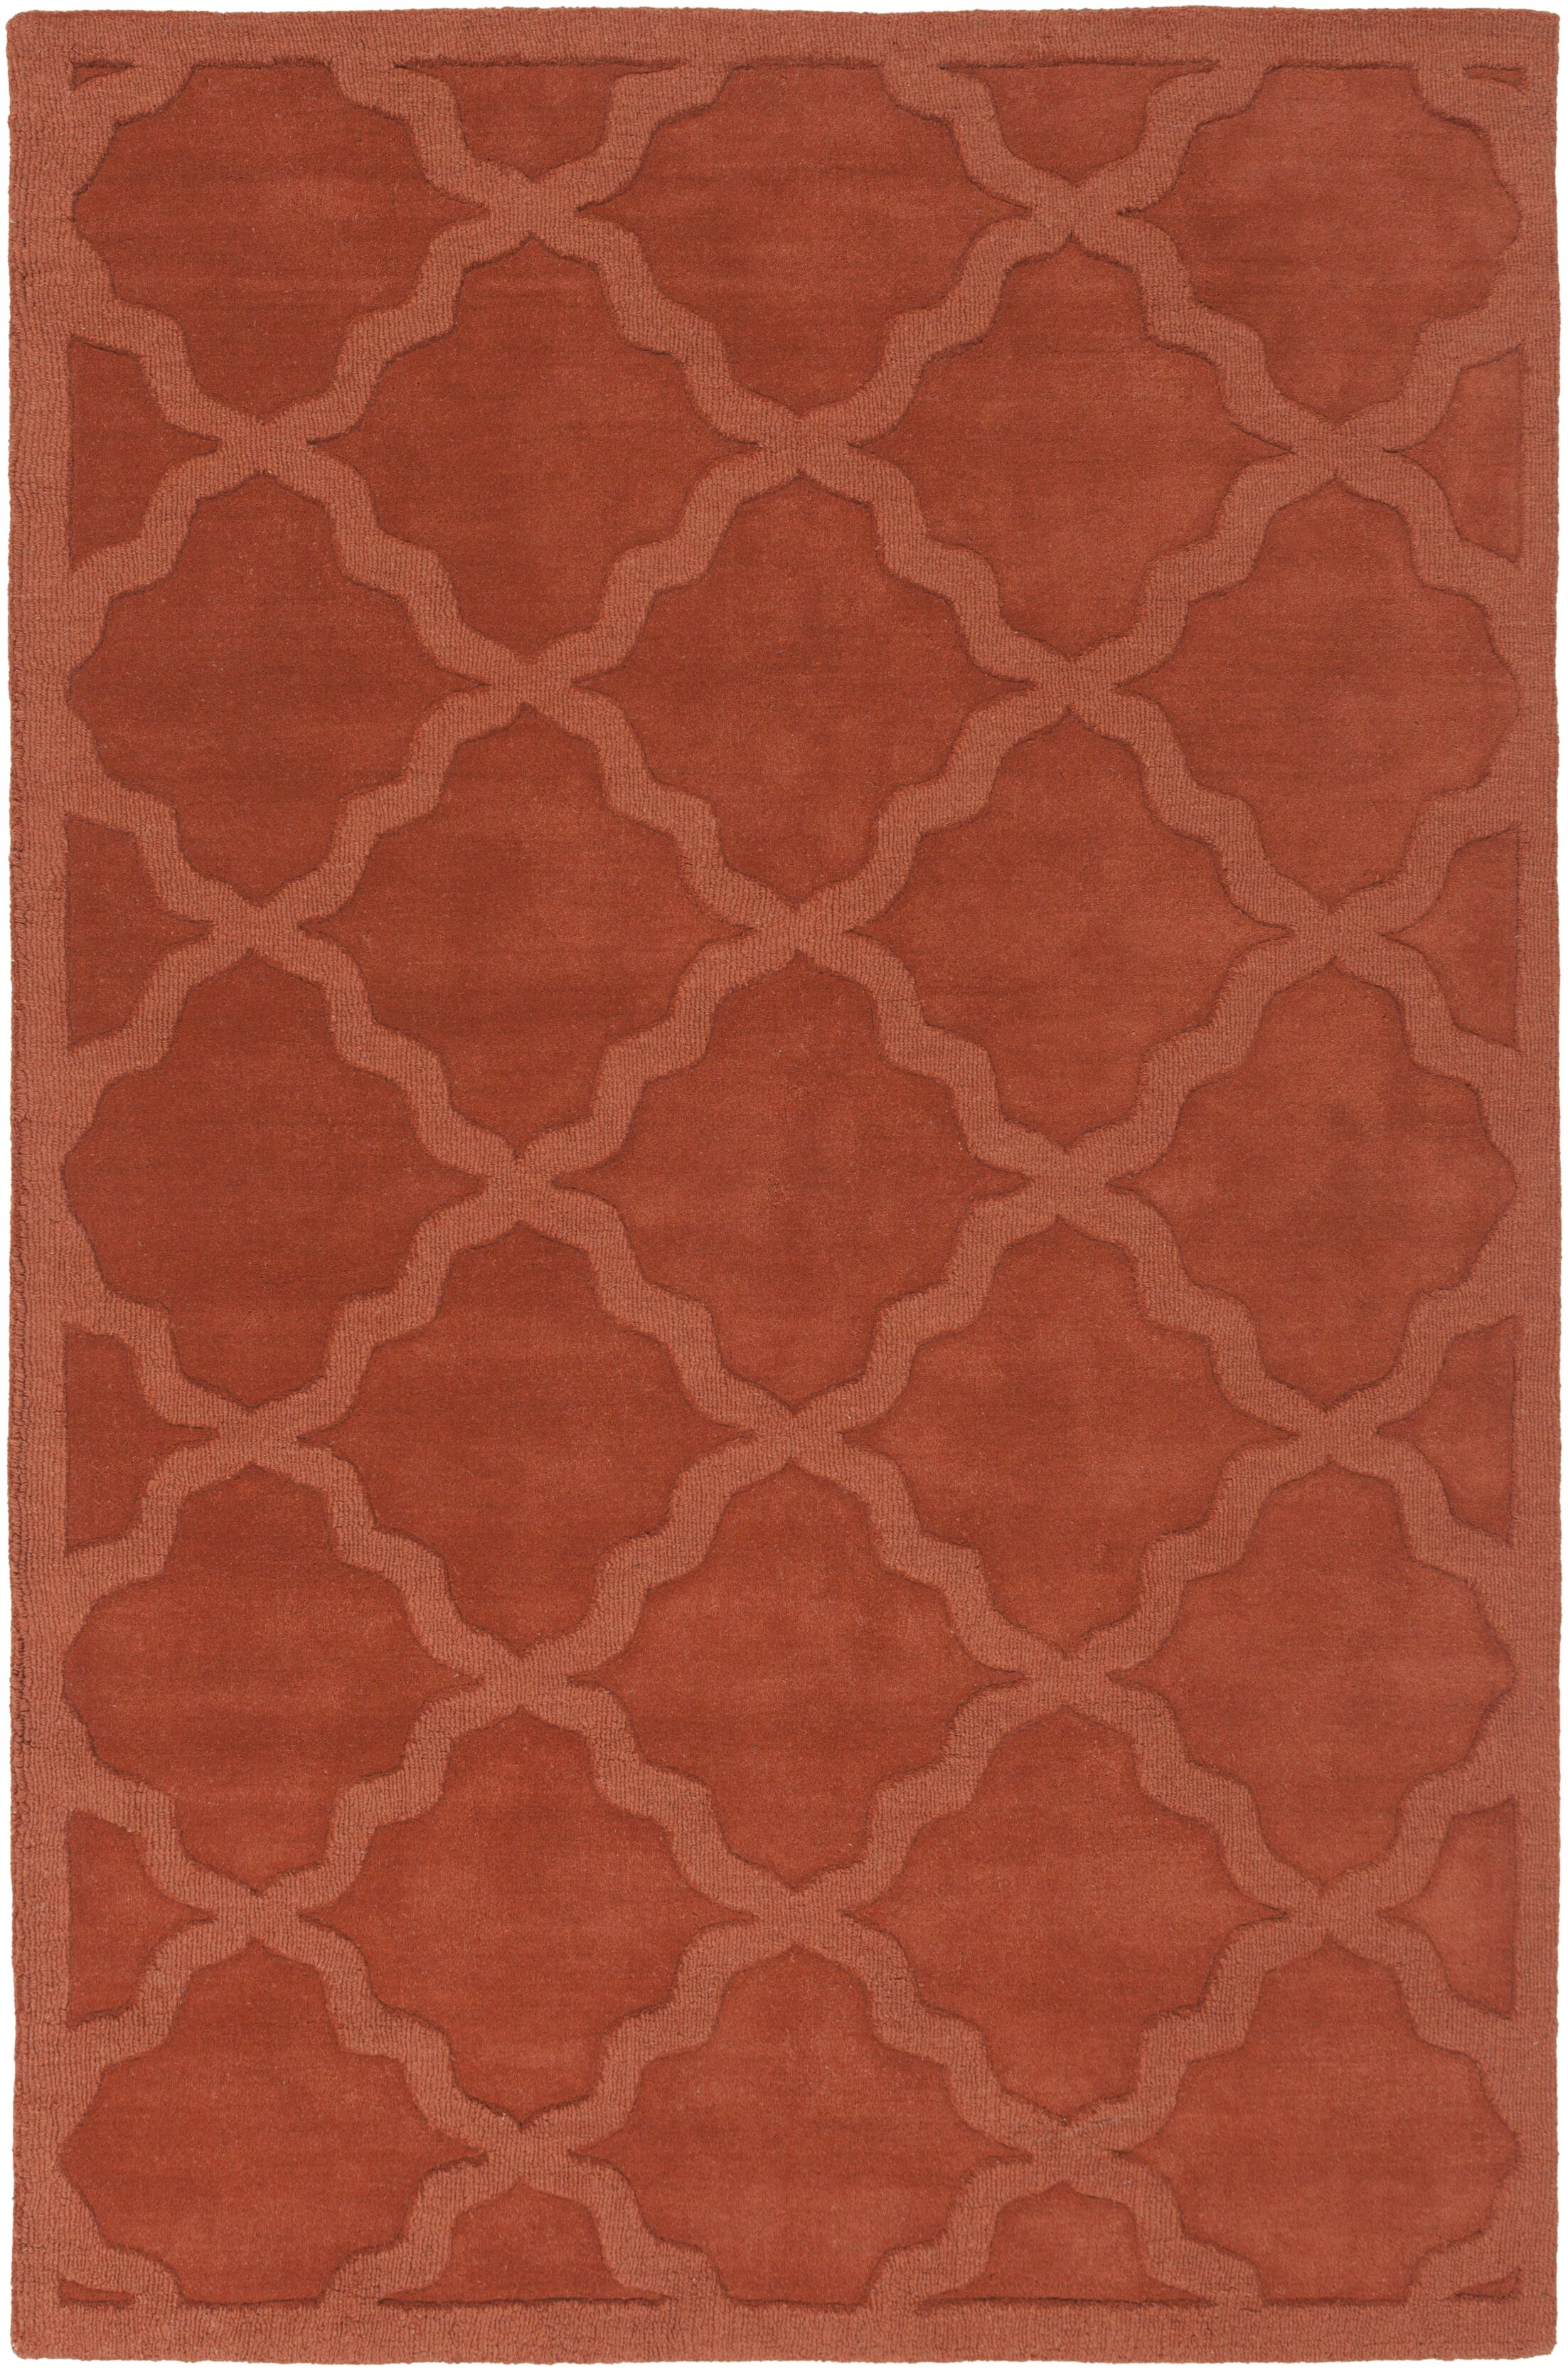 Blankenship Red Geometric Abbey Area Rug Rug Size: Rectangle 9' x 12'